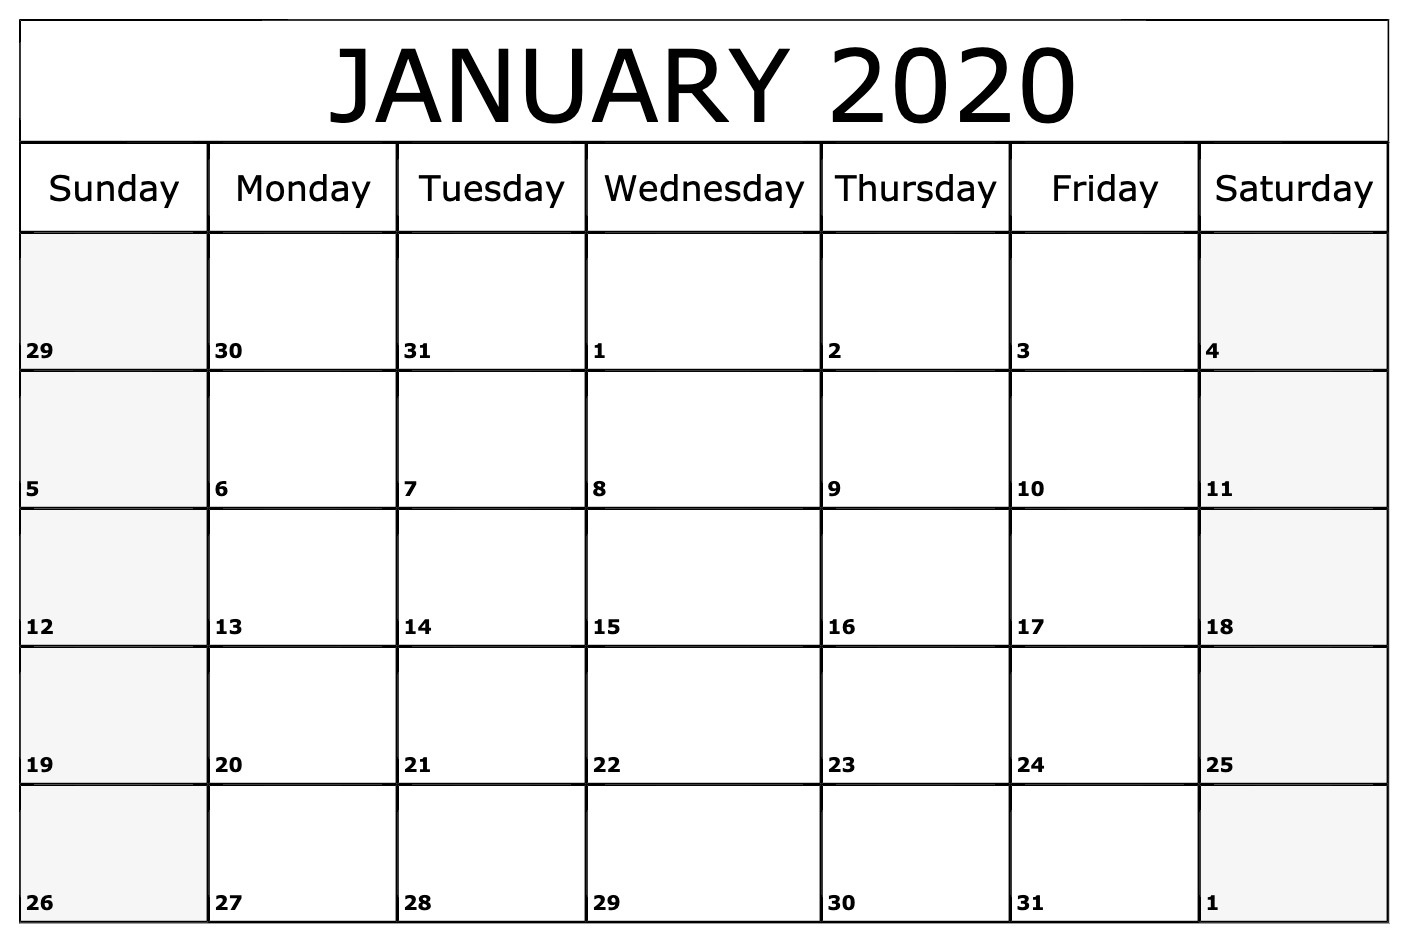 Monthly January Calendar 2020 Template